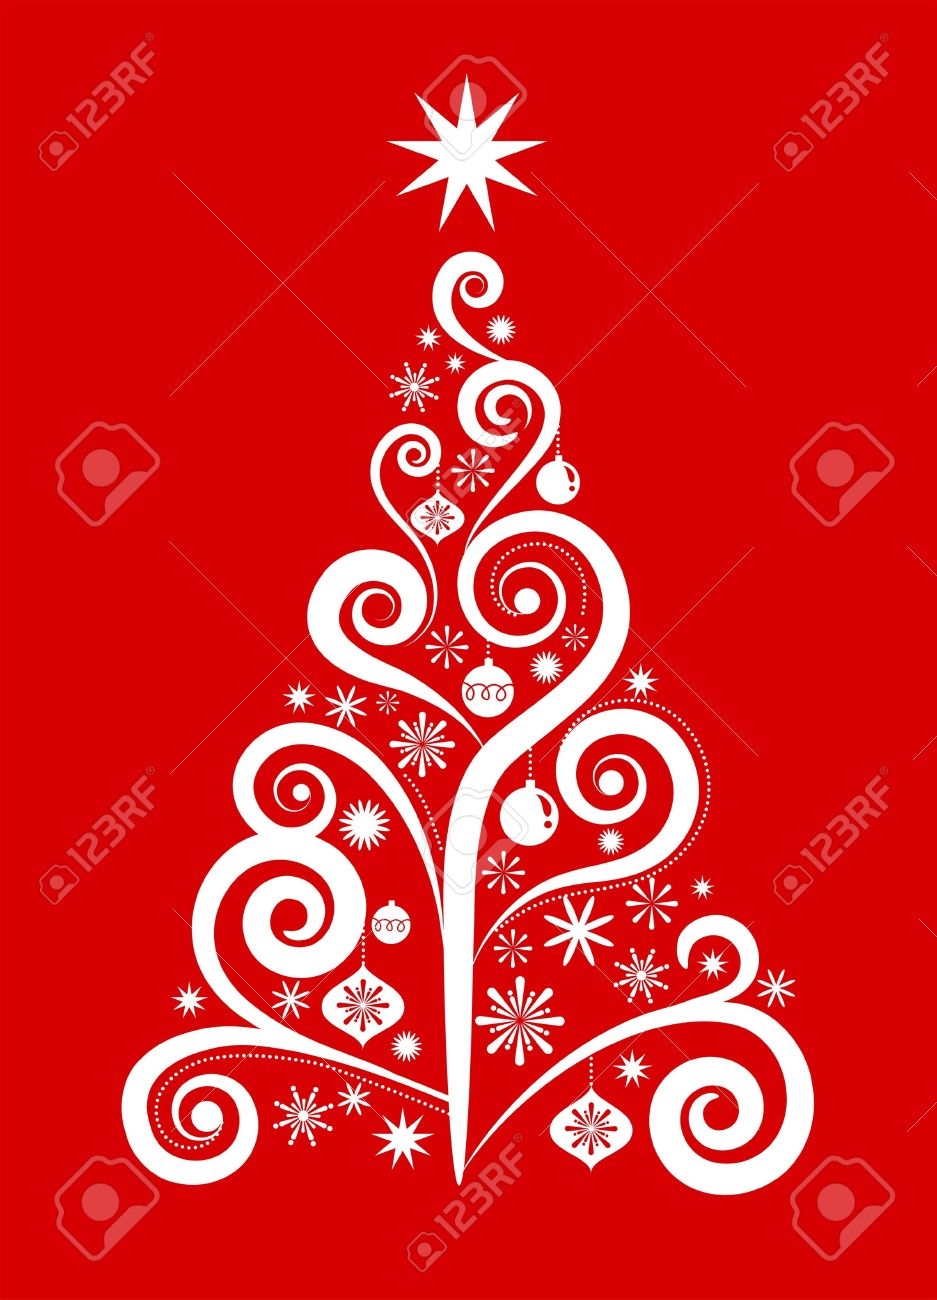 White Christmas Tree On Red Background Royalty Free Cliparts.